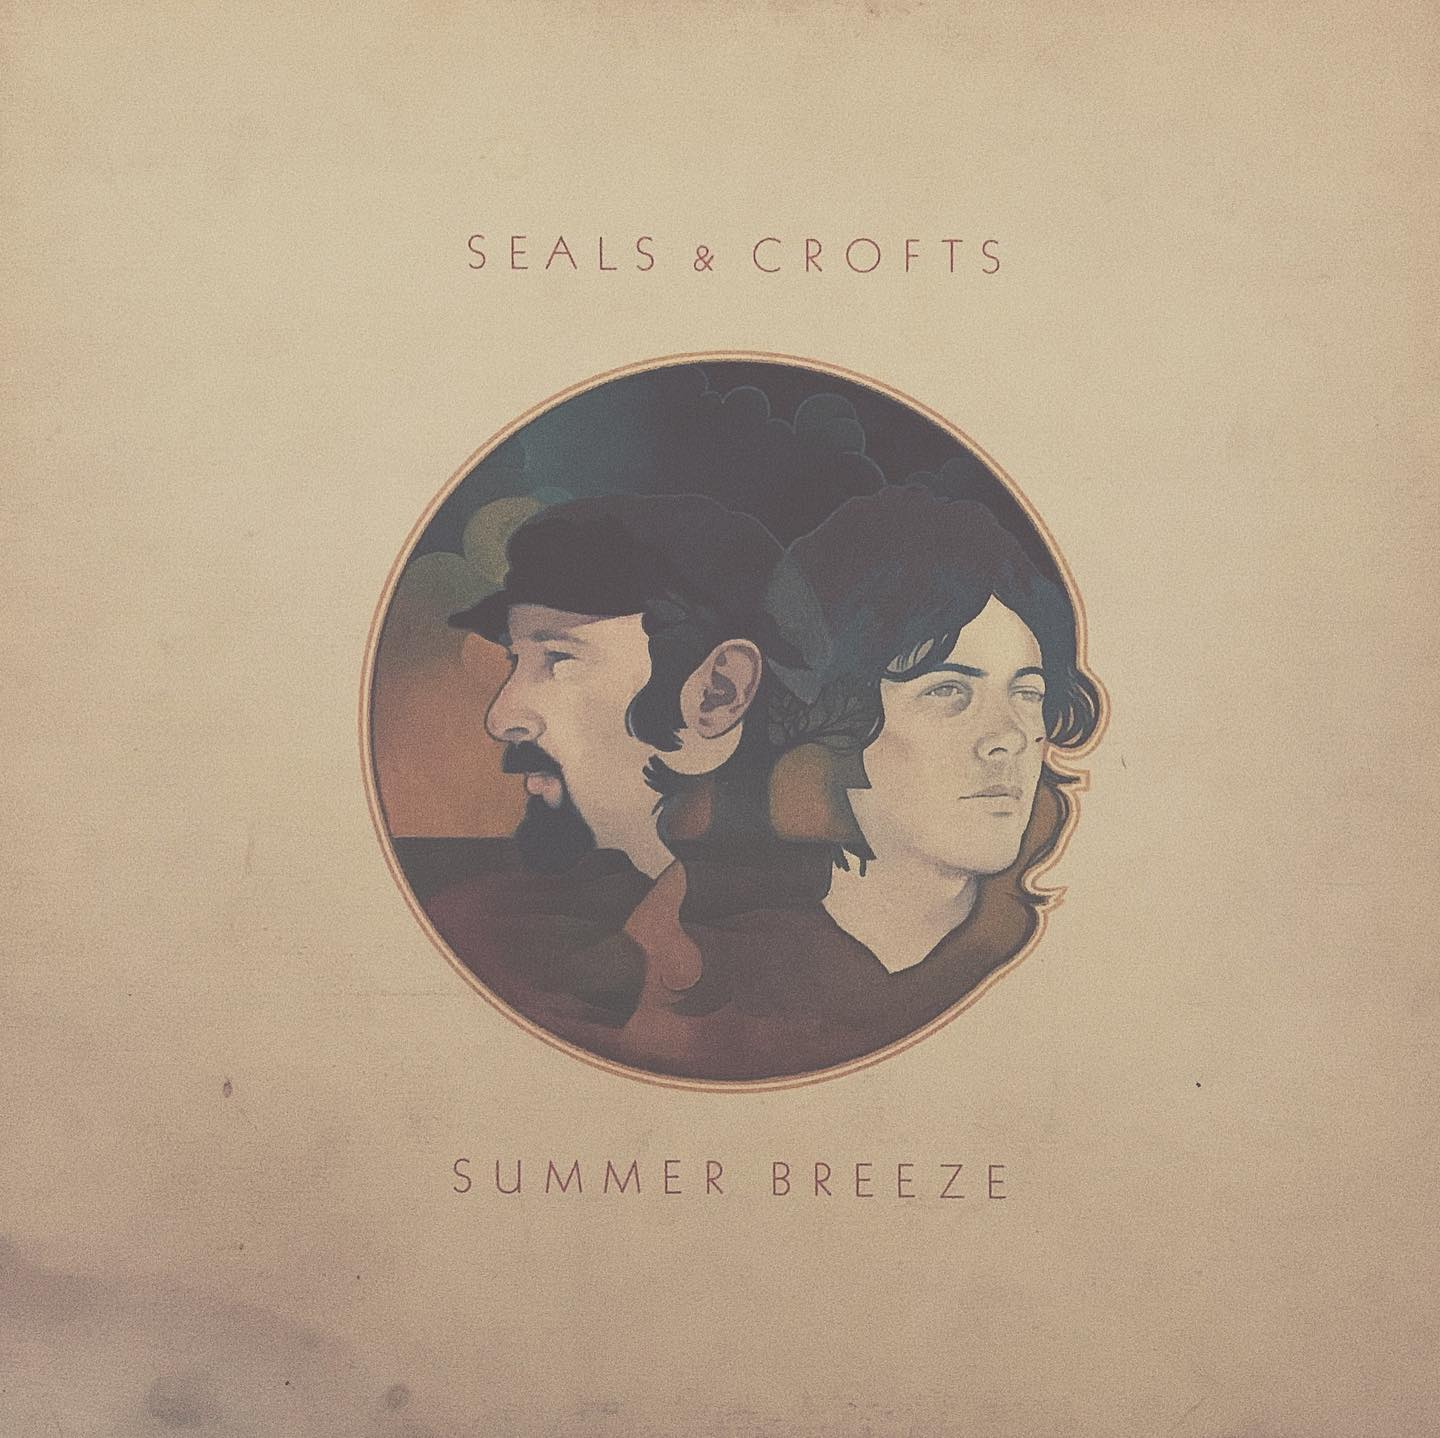 "#ondeck - Seals & Crofts ""Summer Breeze"" - some smooth bready jams and delightful harmonies"